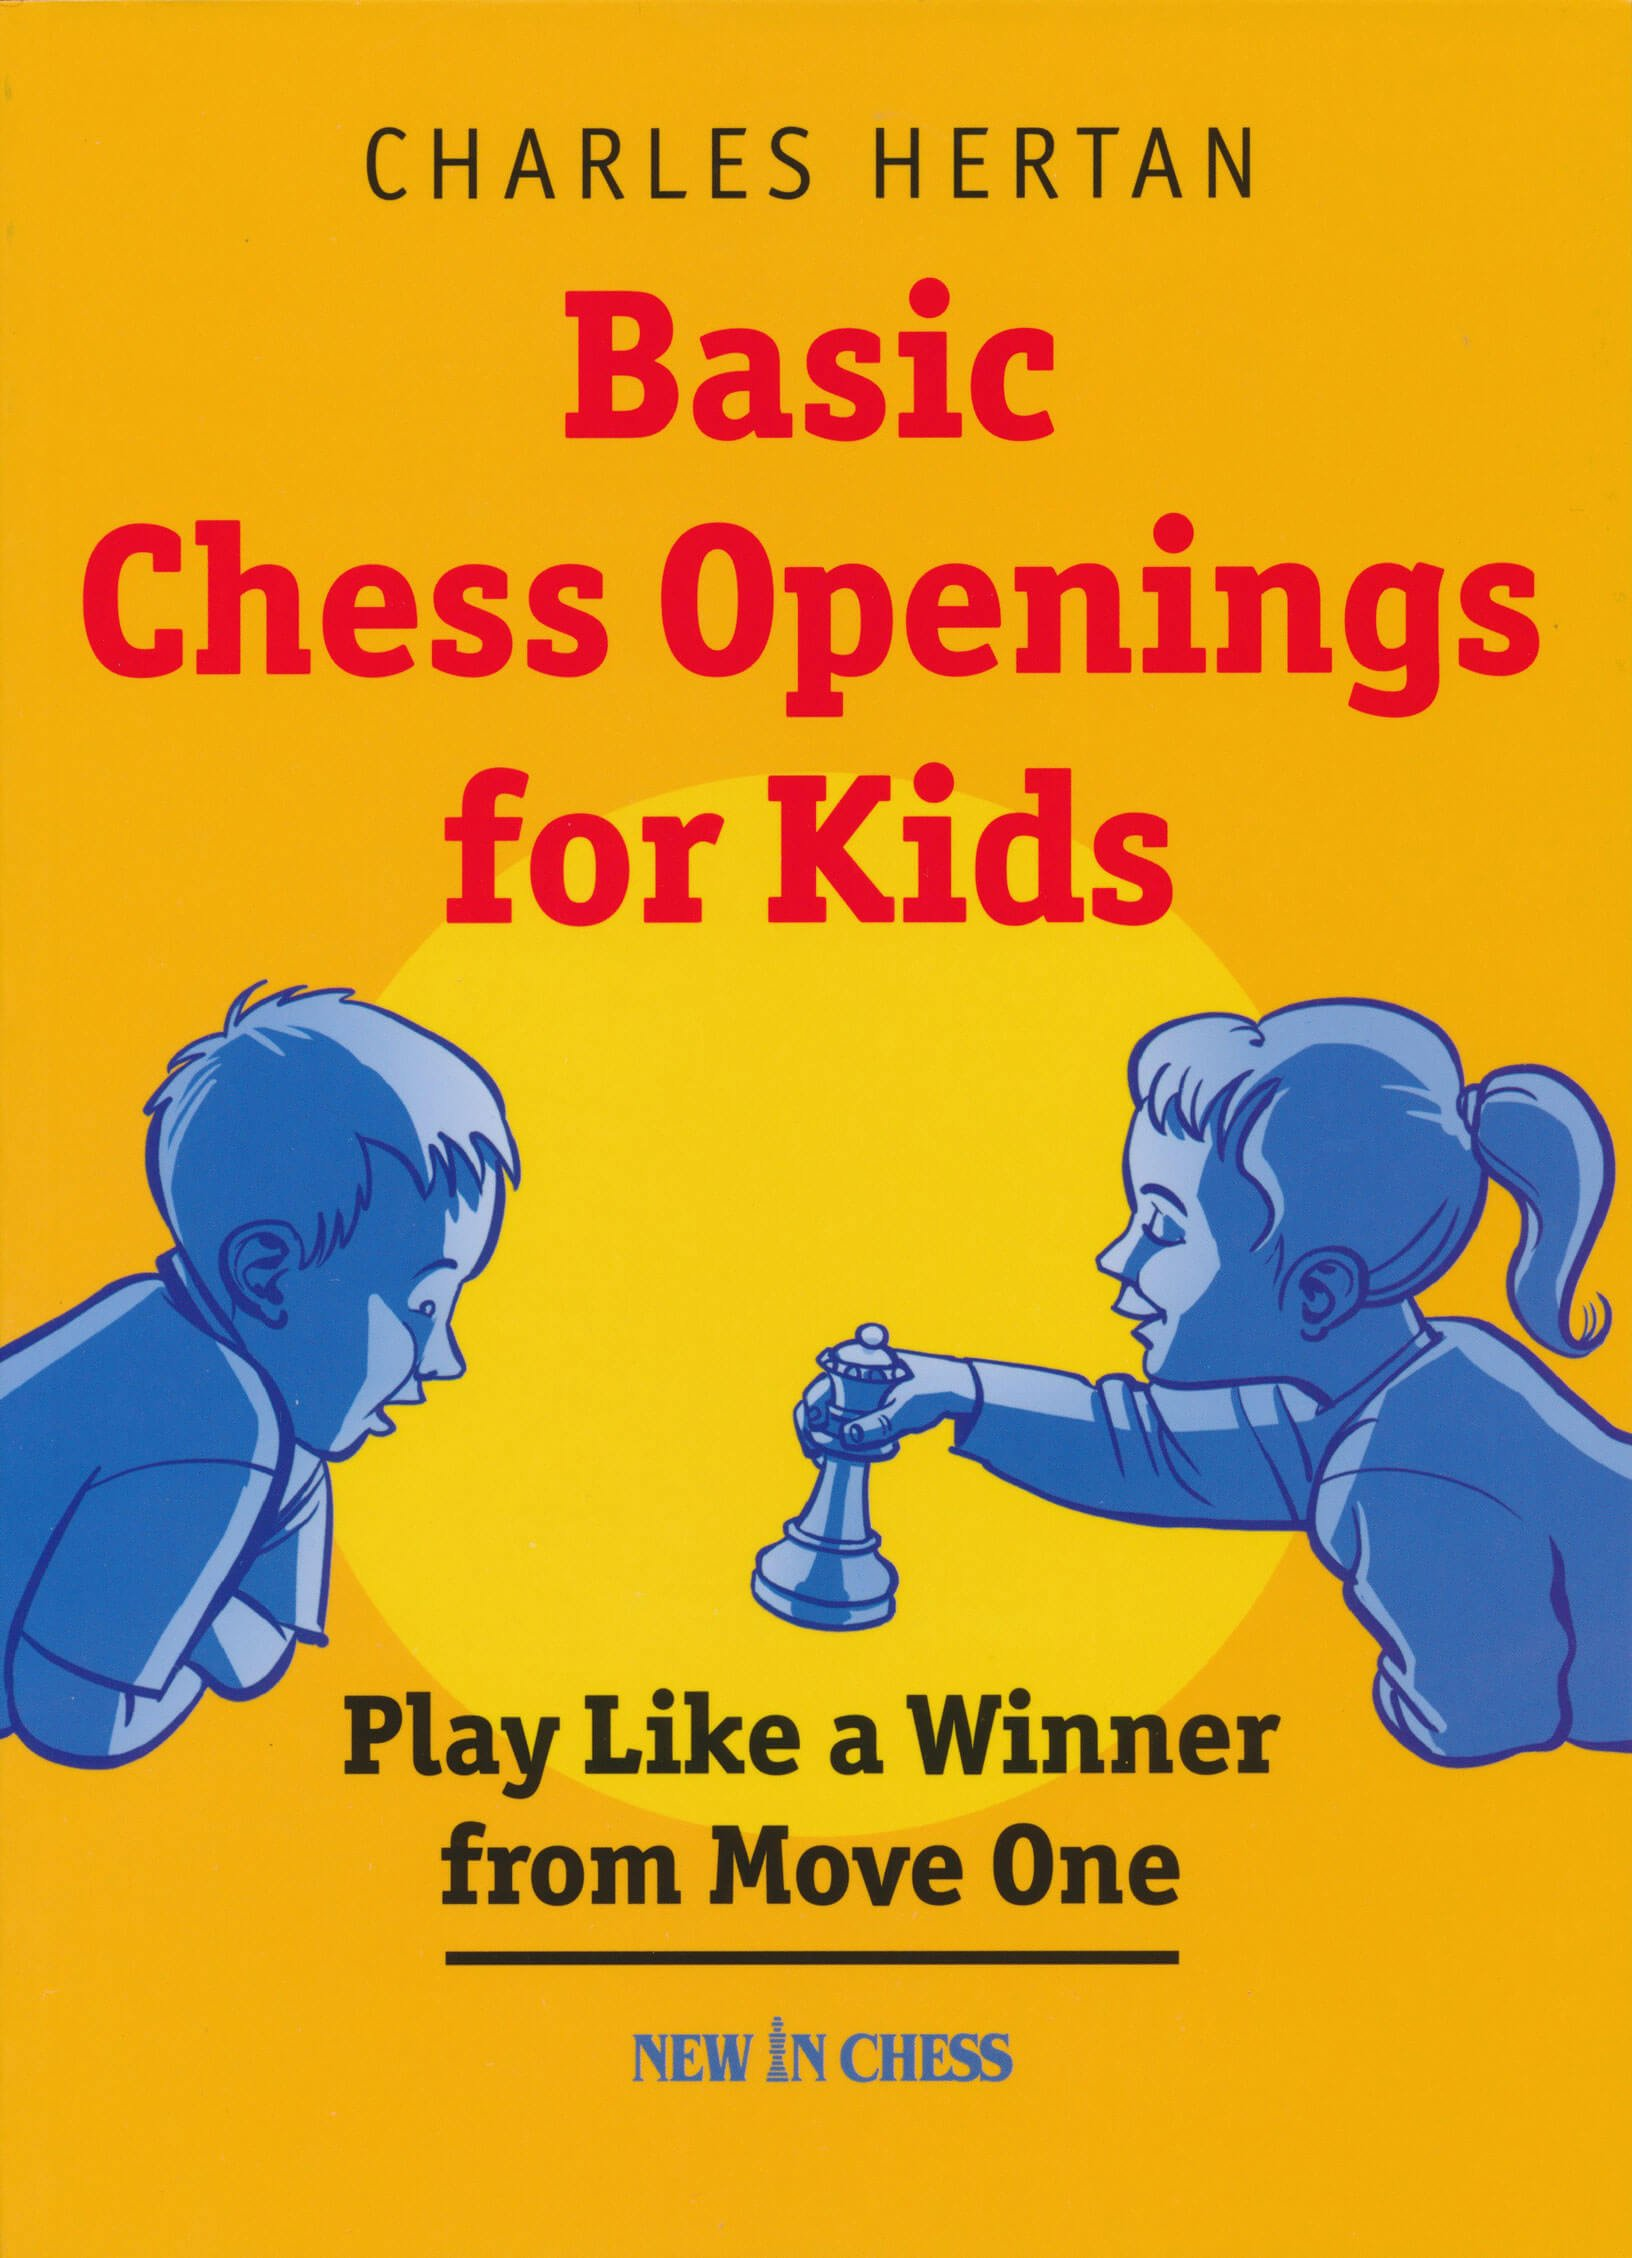 Basic Chess Openings for Kids: Play like a Winner from Move One